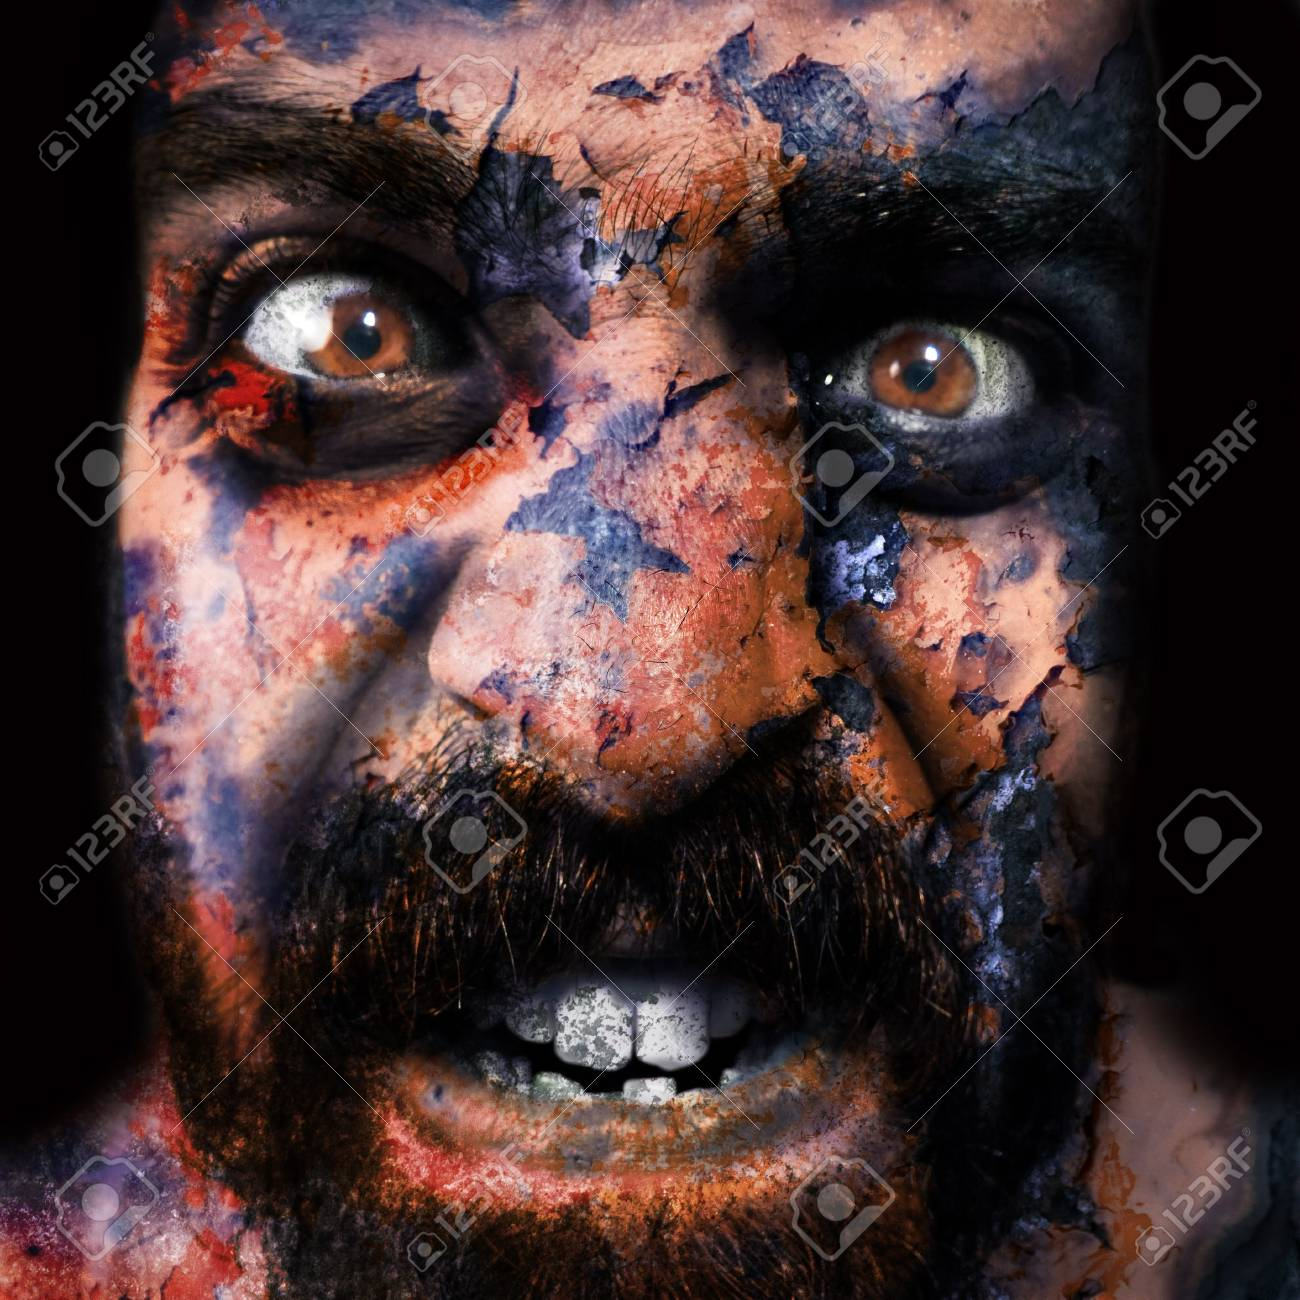 man with monstrous monstrous graphics processing expressions Stock Photo - 8086695